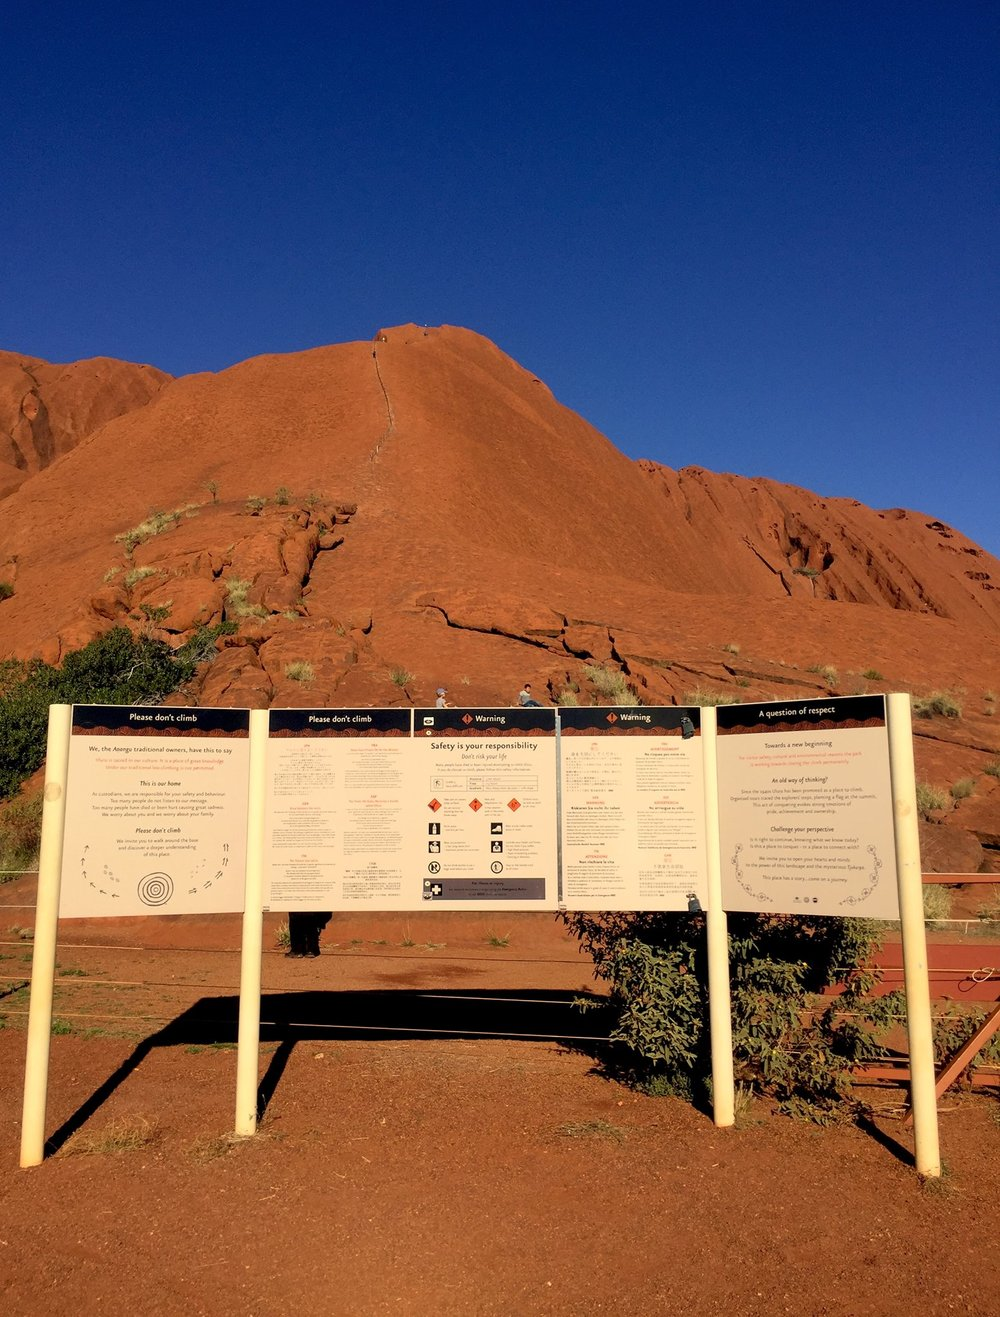 Interdiction de monter sur Uluru. © photo : Aboriginal Signature • Estrangin Fine Art Gallery